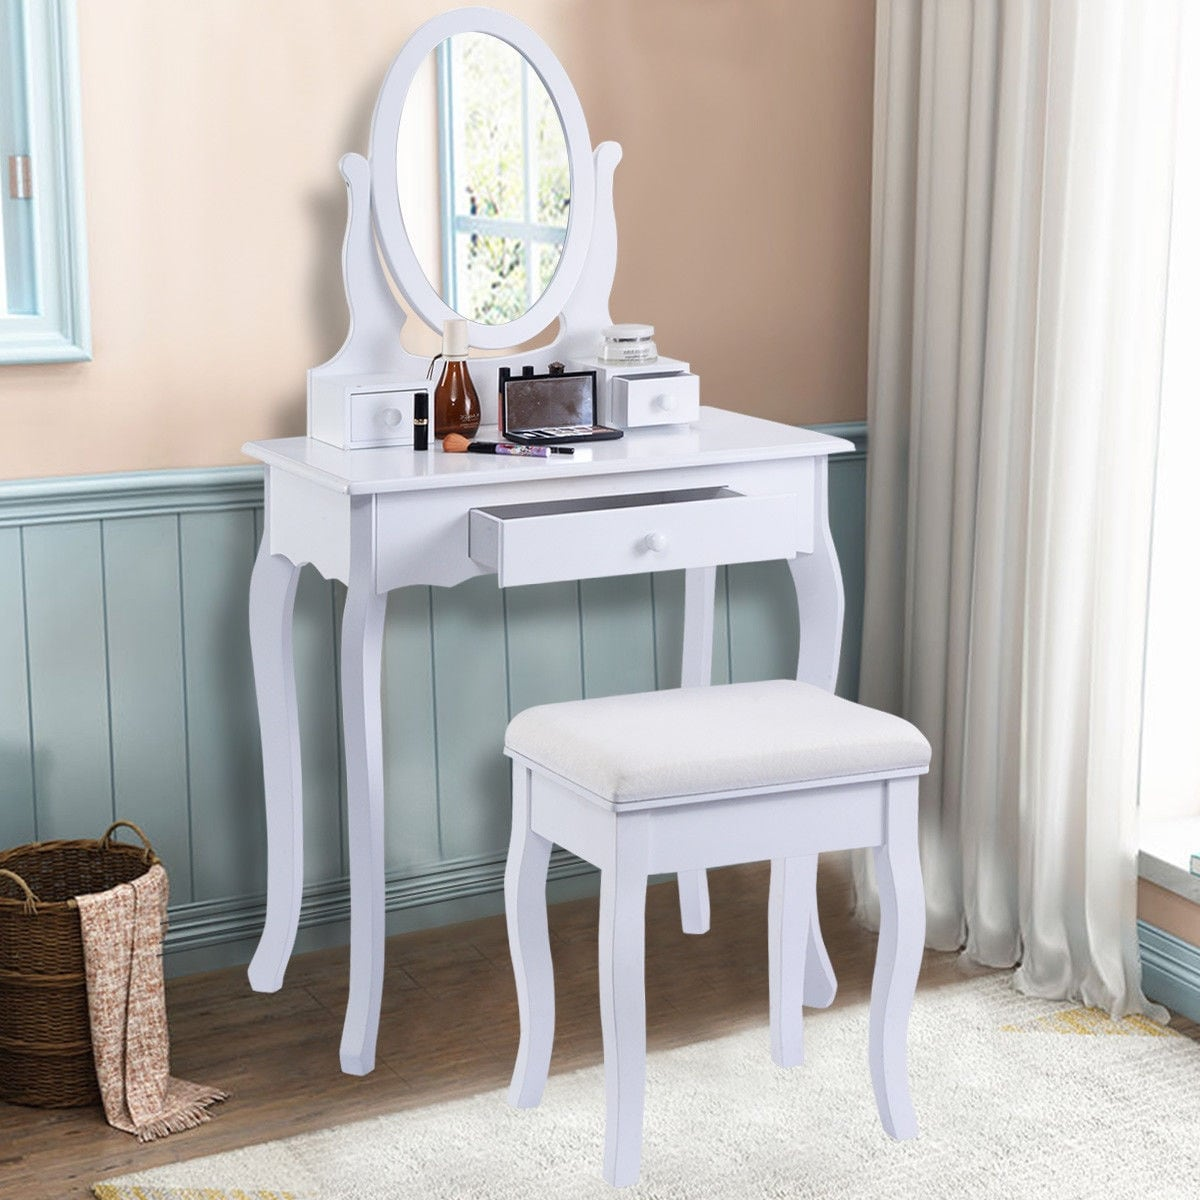 Superbe Shop Costway White Vanity Table Jewelry Makeup Desk Bench Dresser Bathroom  W/ Stool 3 Drawers   Free Shipping Today   Overstock.com   18539197